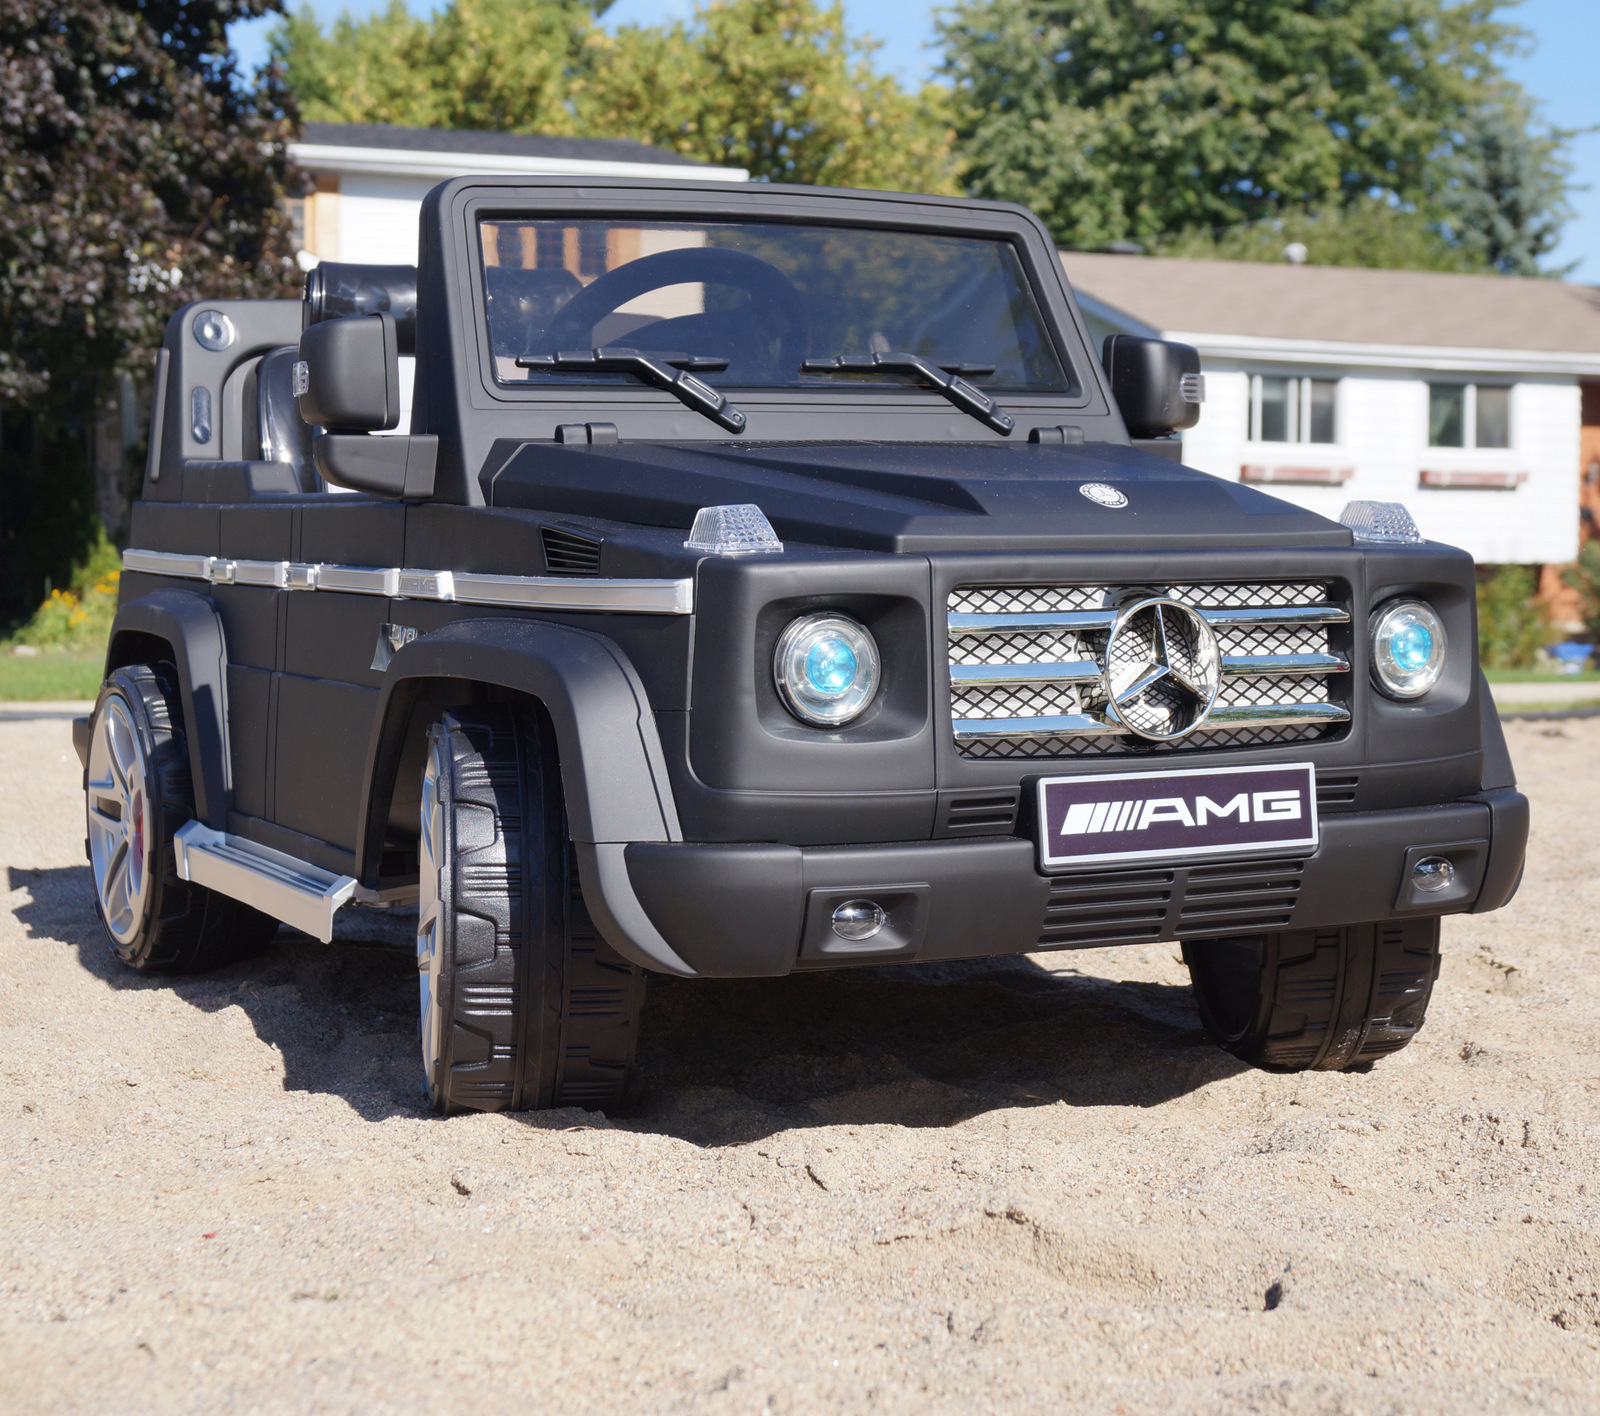 Mercedes benz g55 amg 2 seat kids ride on battery powered for 2 seater mercedes benz